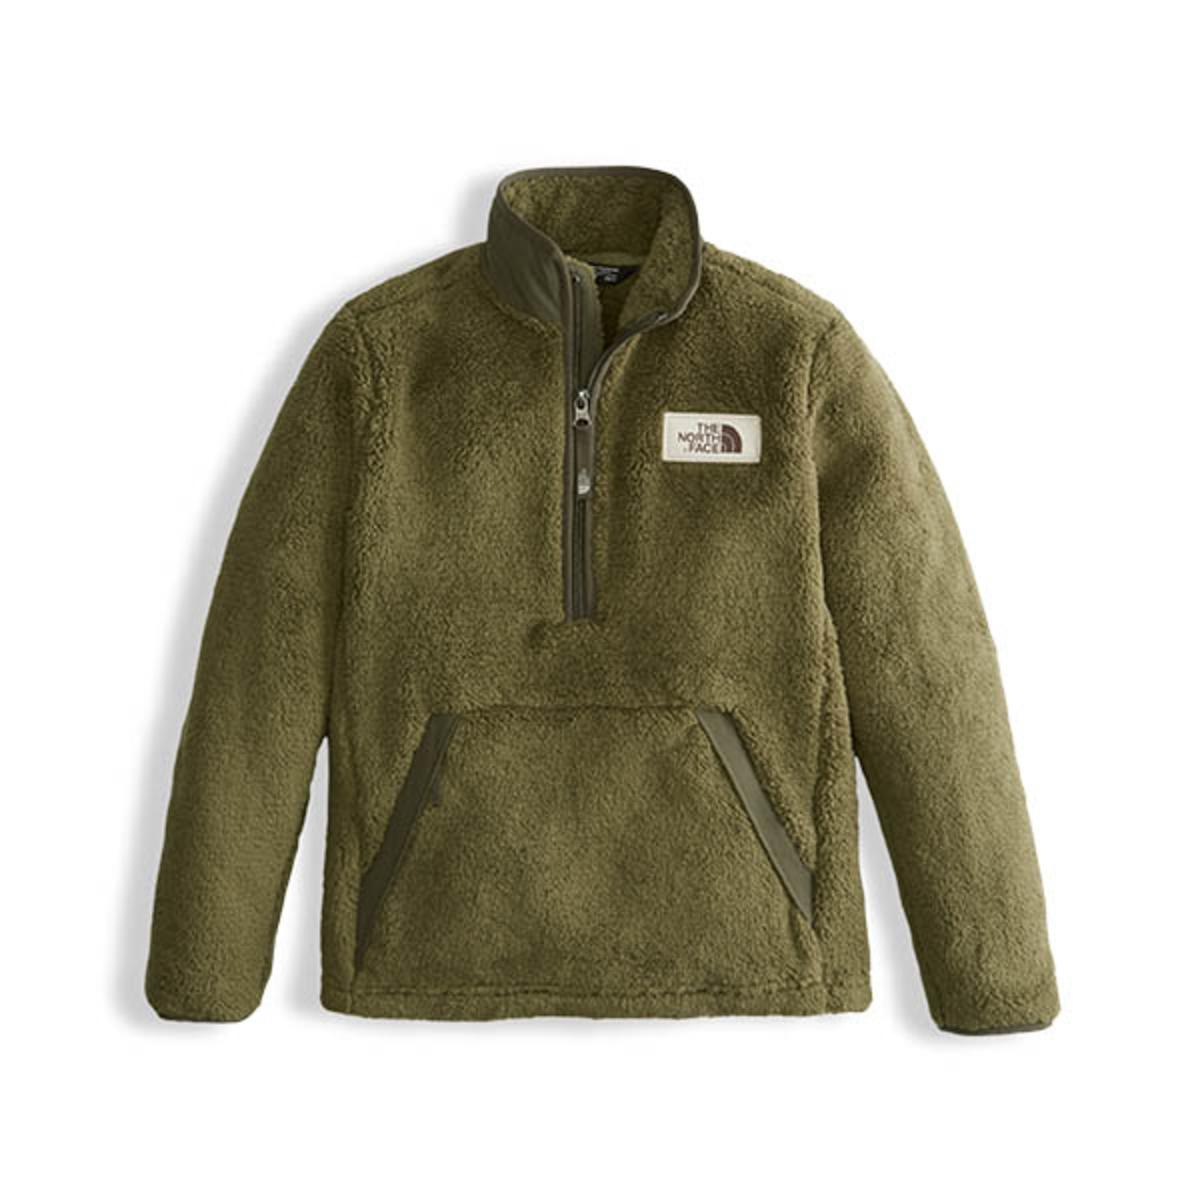 The North Face Boys Campshire Pullover - The Warming Store 90efbc1e4